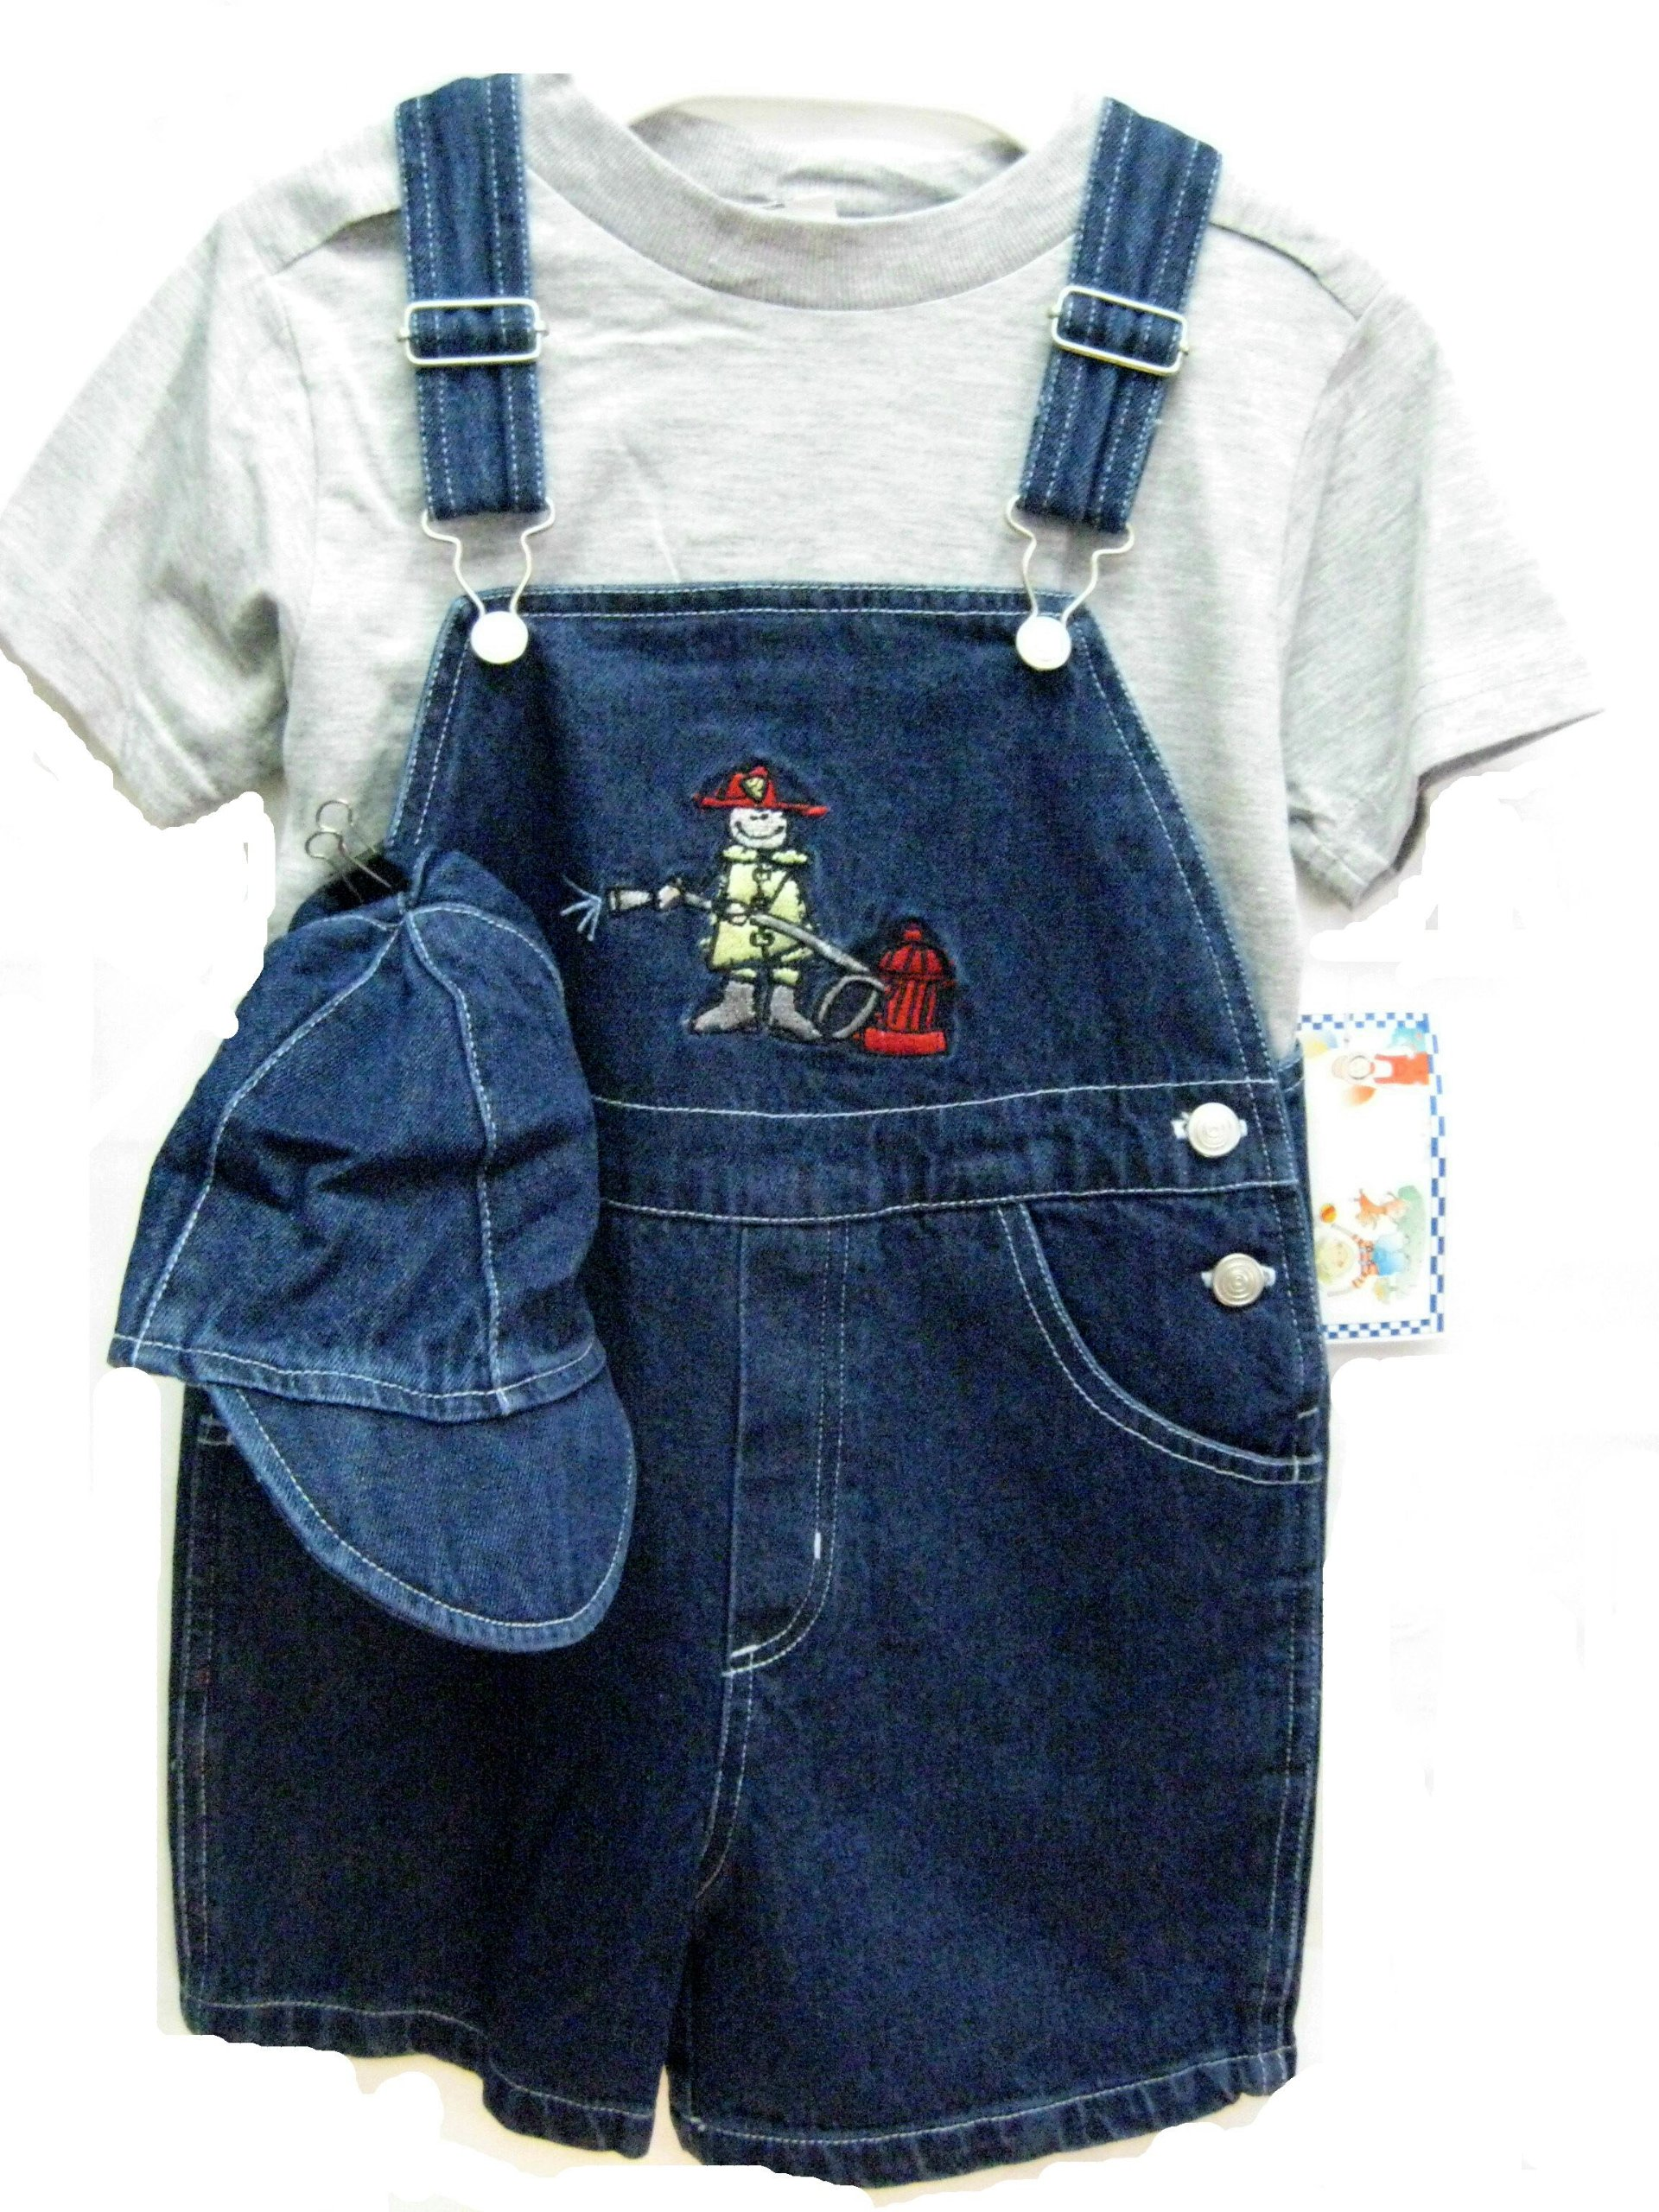 Toddler Boys Size 2T Indigo Denim Embroidered Pocket Shortall 2-PC Sets with Cap